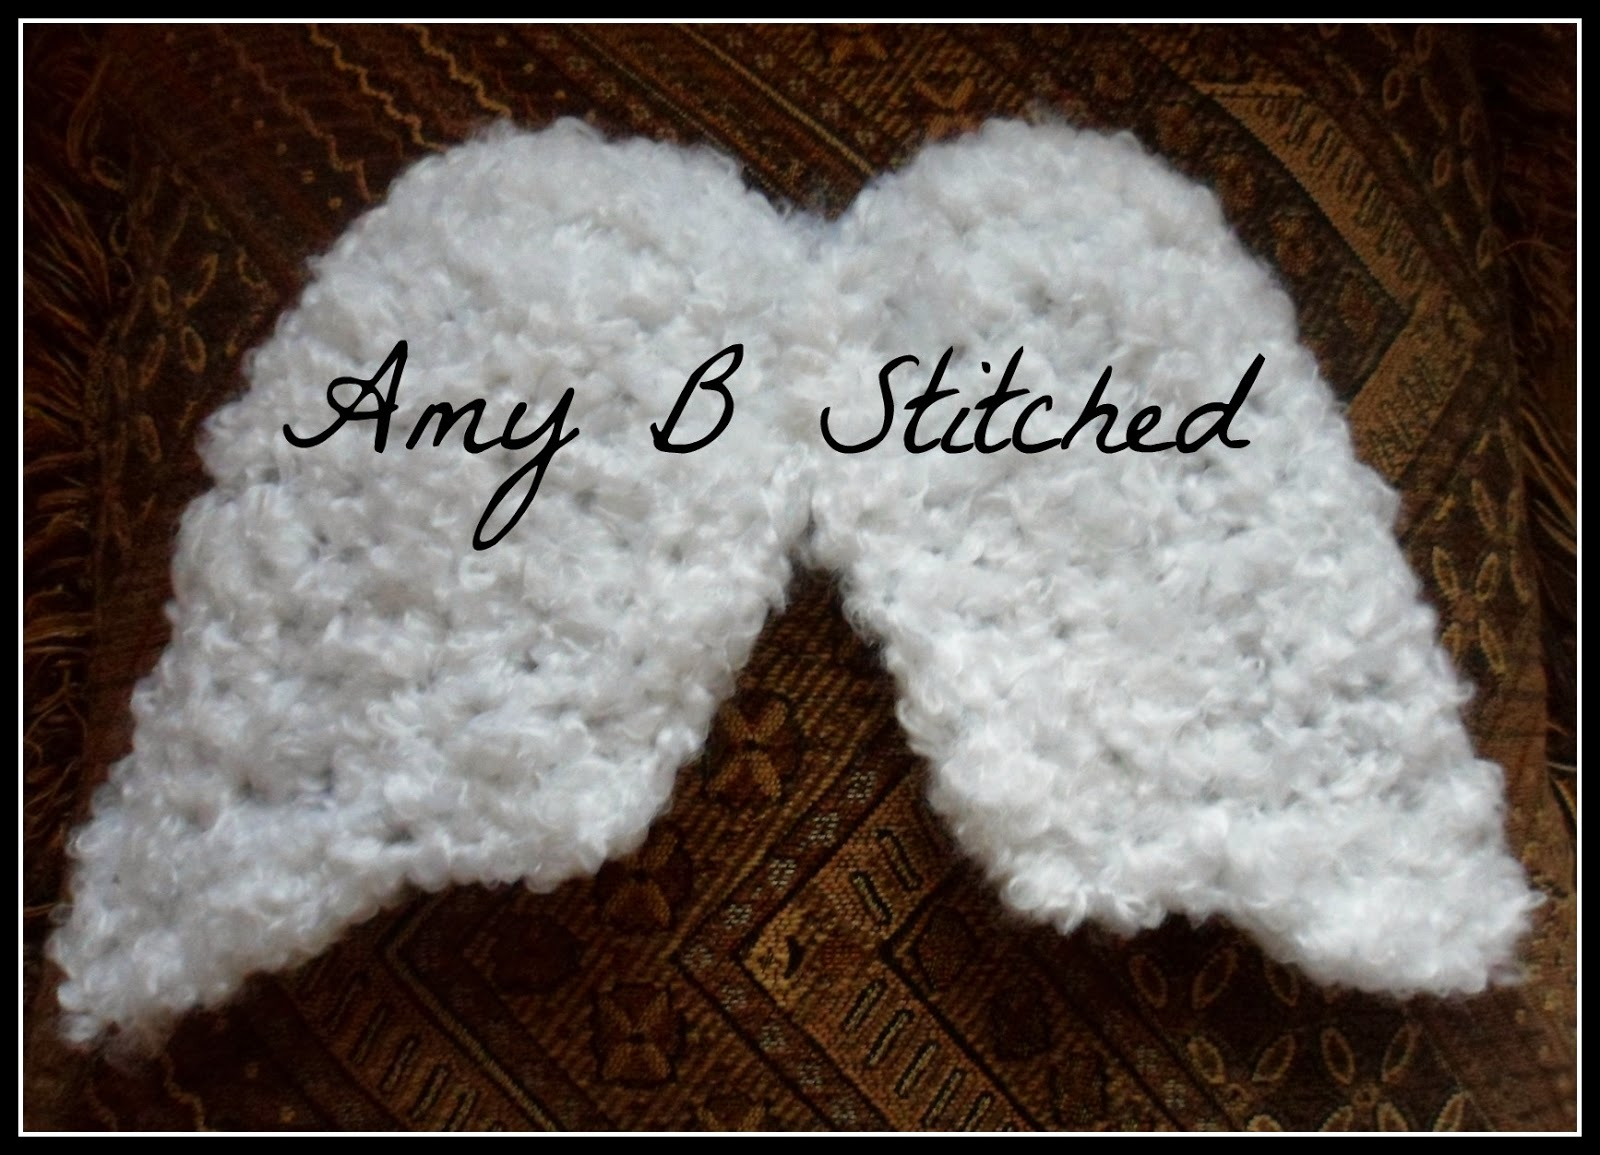 Crochet Baby Wings Pattern Free : A Stitch At A Time for Amy B Stitched: Newborn Angel Wings ...